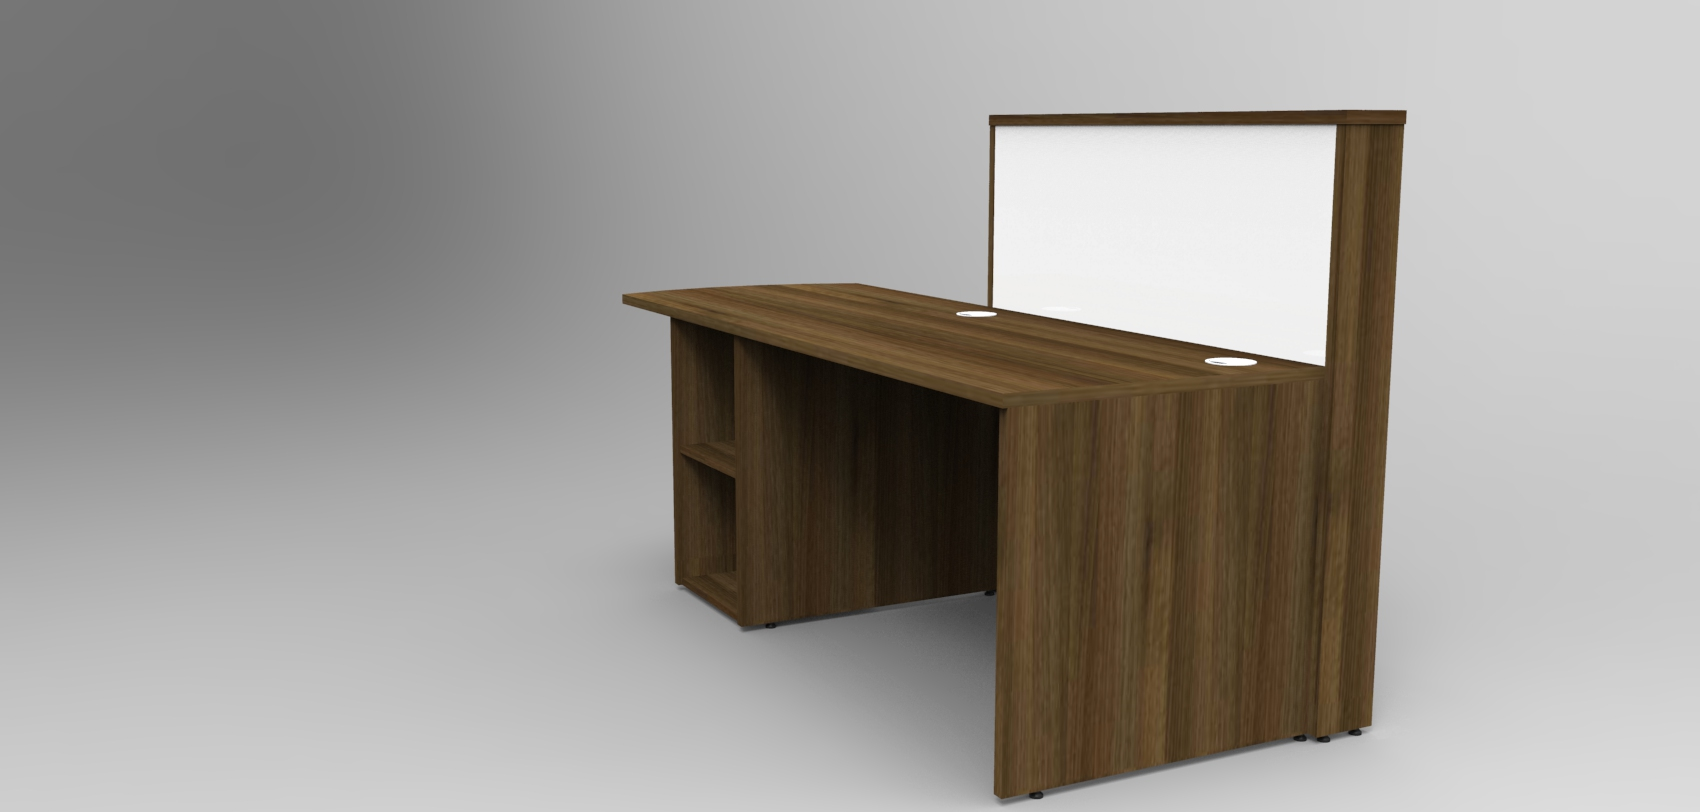 Image 4UC- Tall Walnut and White tall compact Union reception desk, rear view